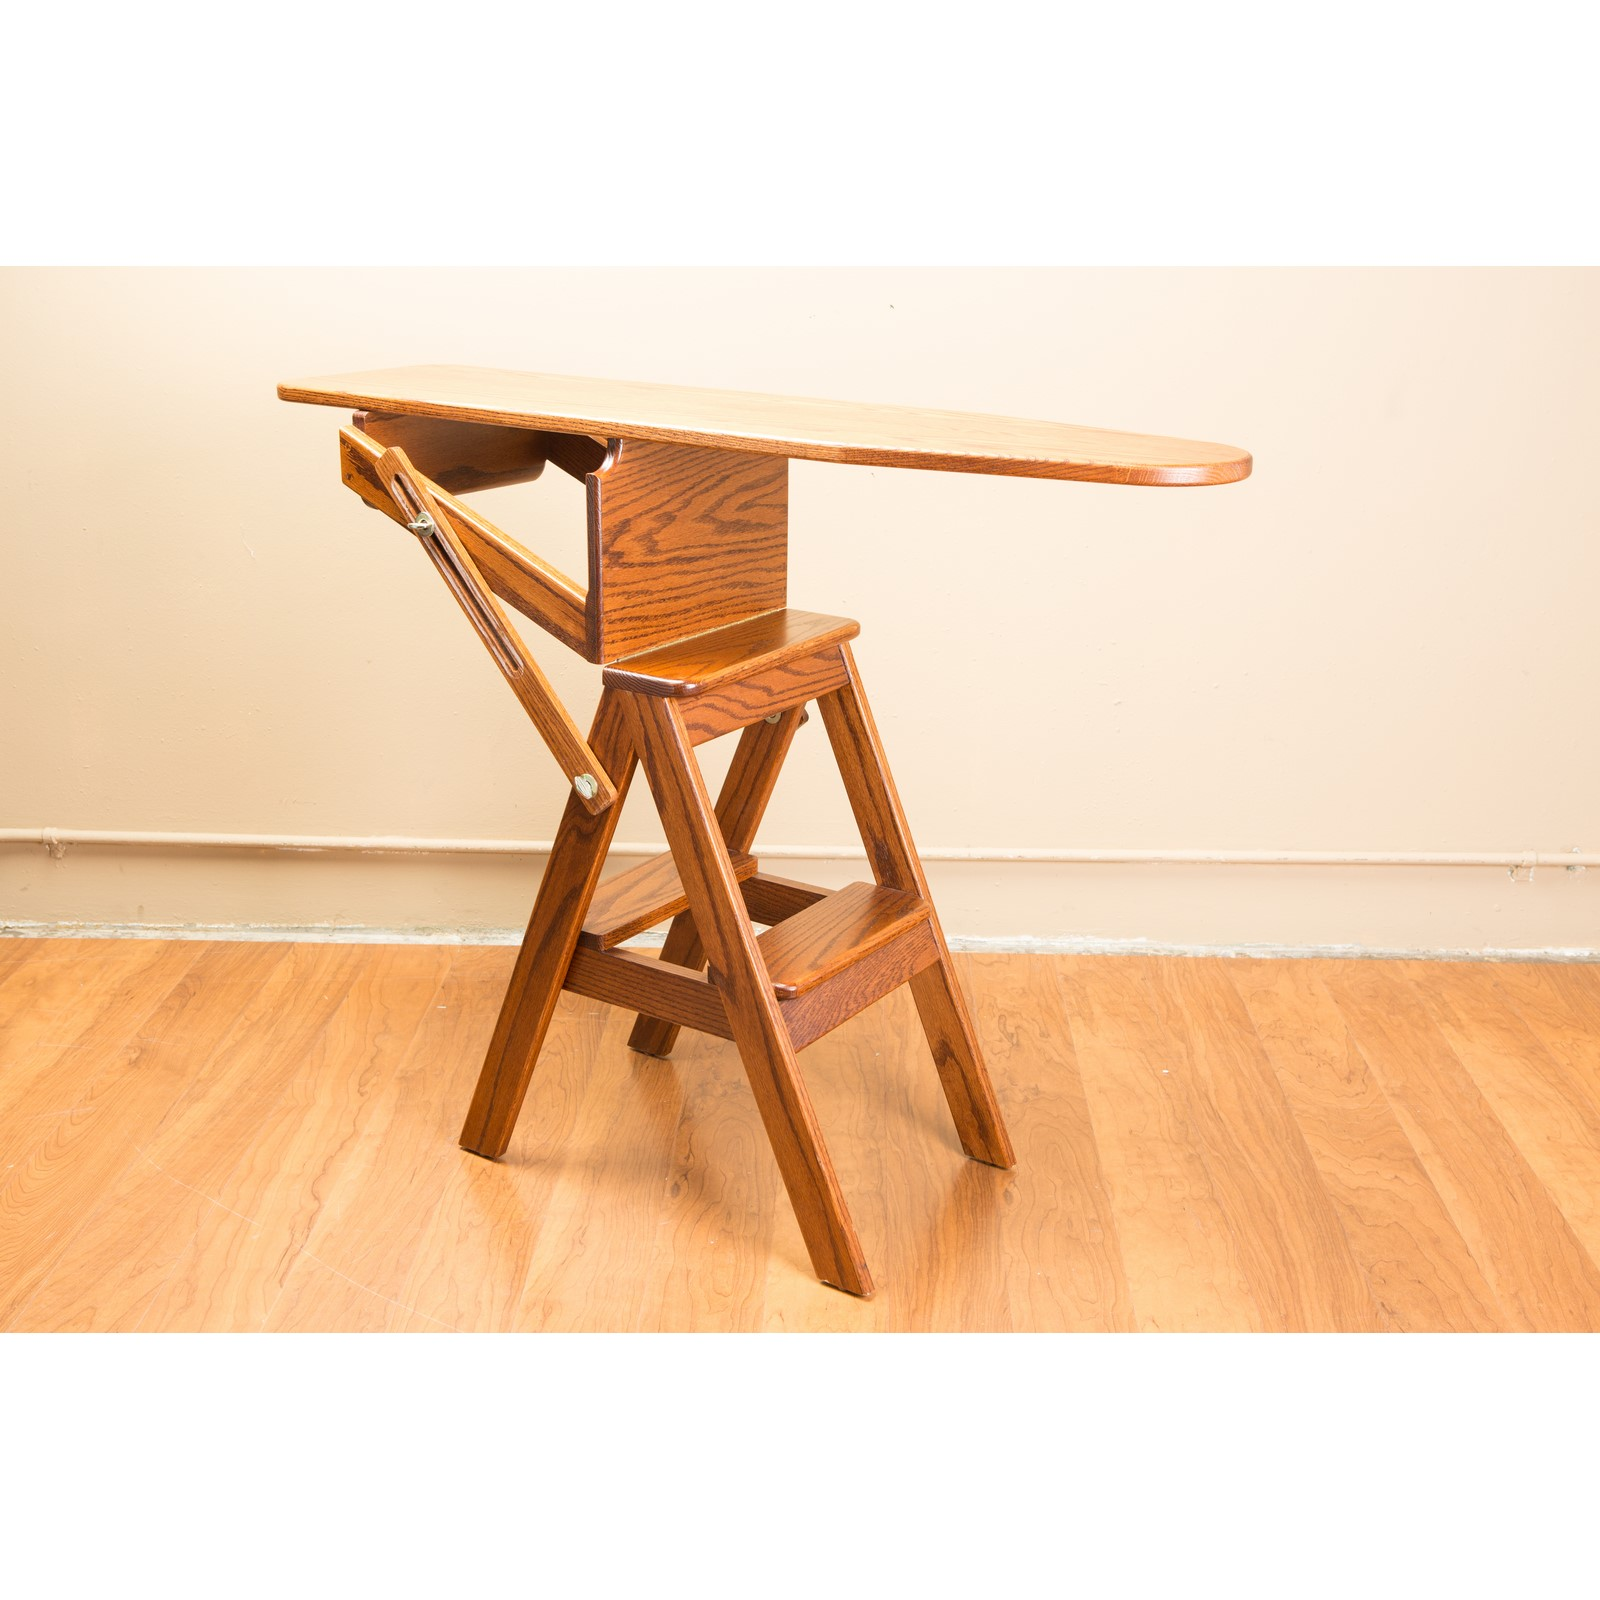 wooden design furniture. Creative Wood Design On-It Stepping Stool 2 Wooden Furniture T